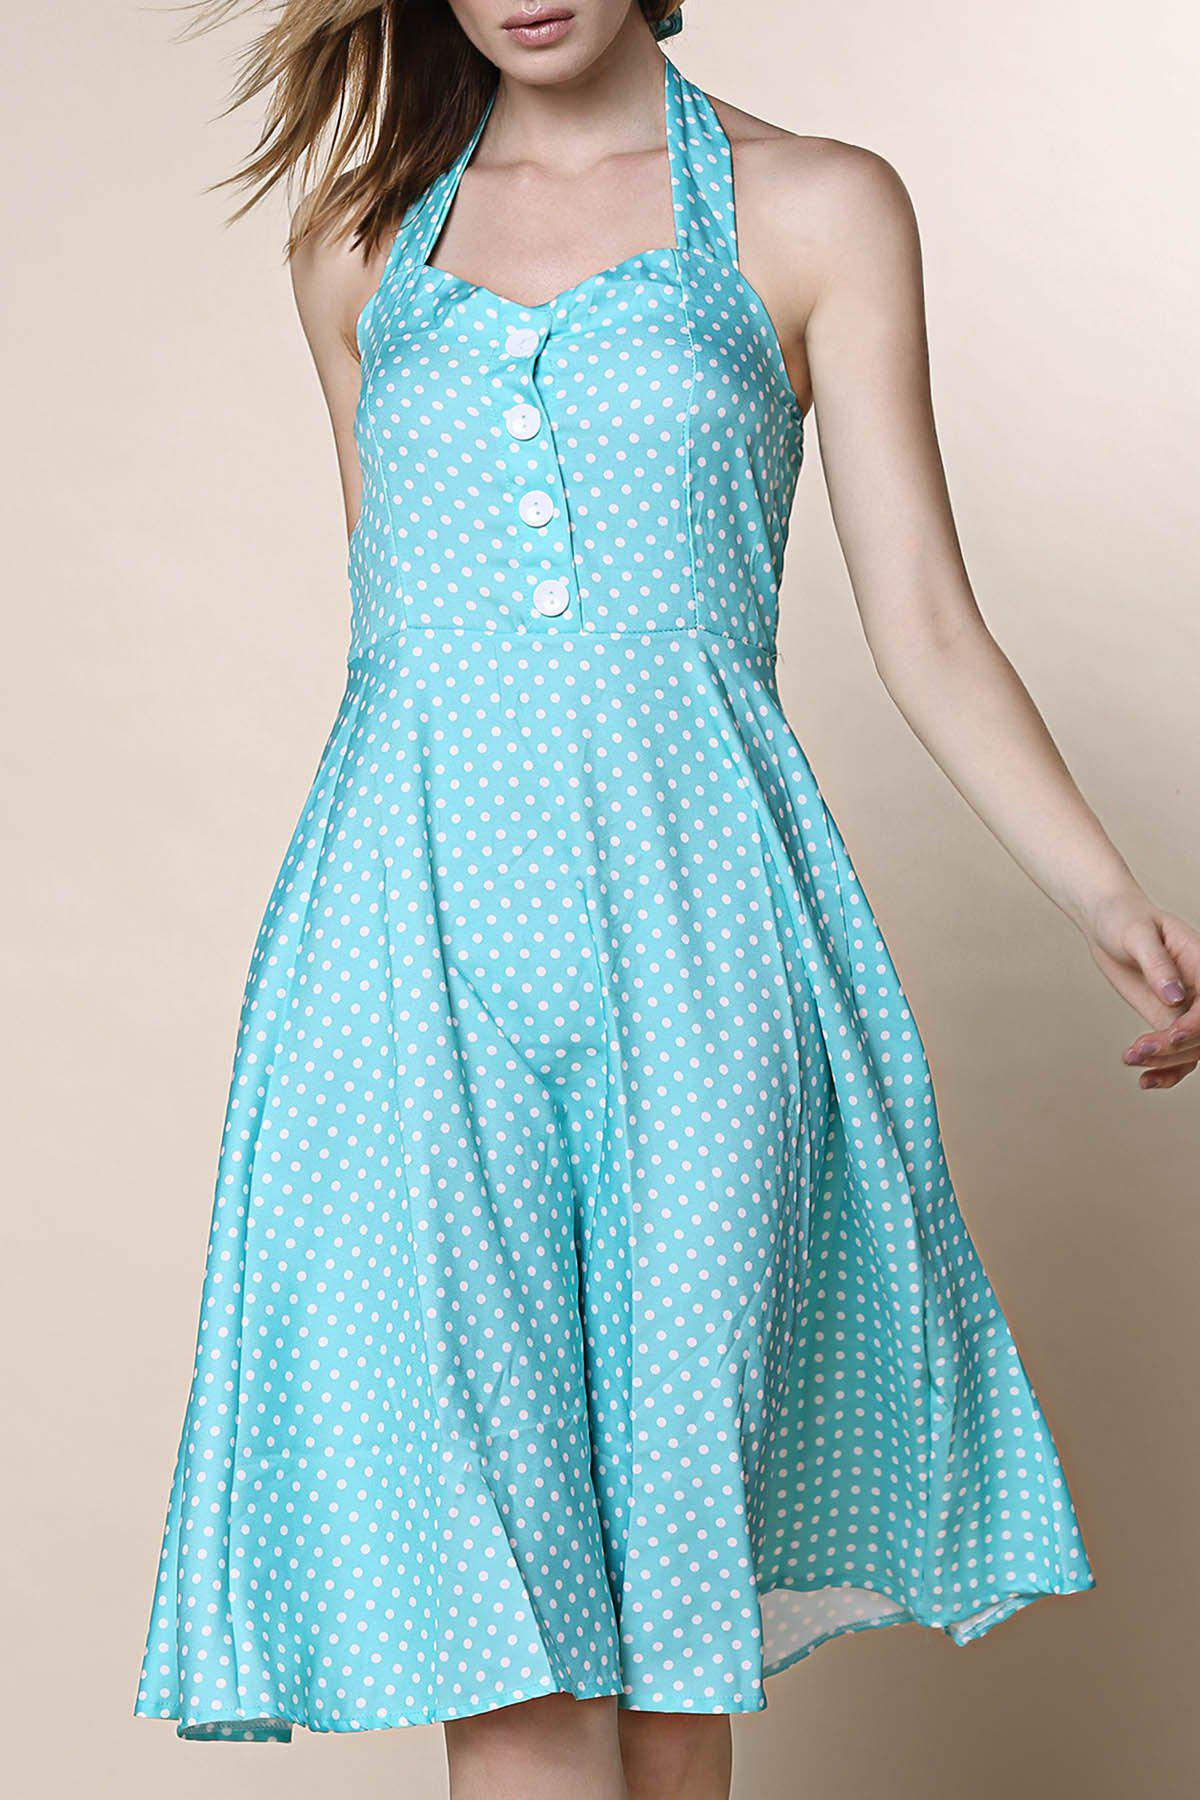 2018 Vintage Halter Polka Dot Print Pleated Ball Gown Dress For ...